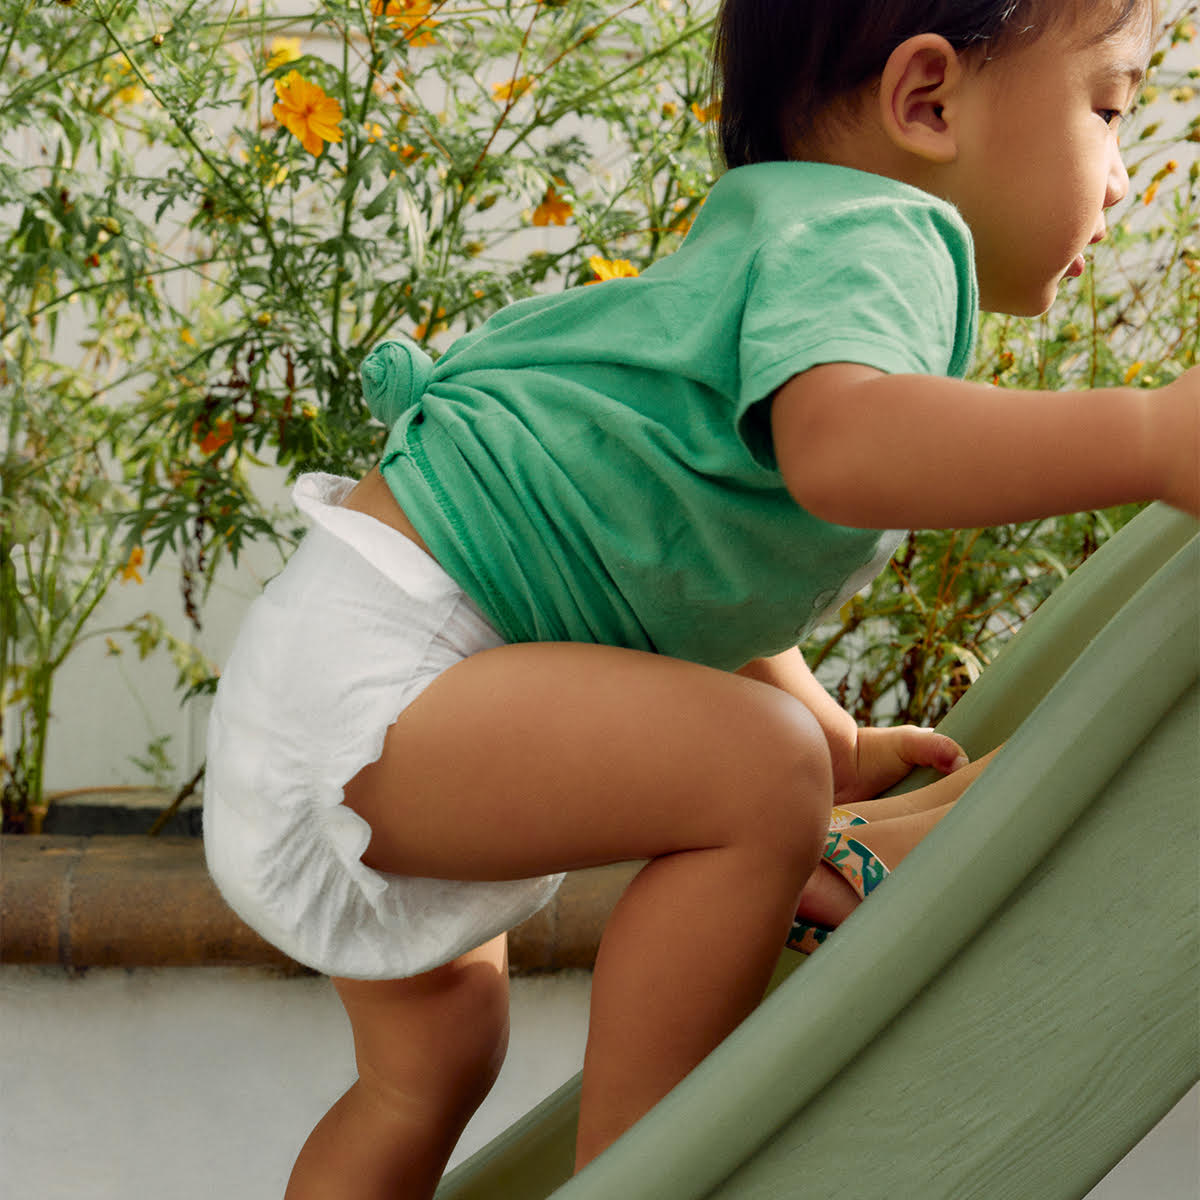 A baby wearing a green shirt and a Coterie diaper